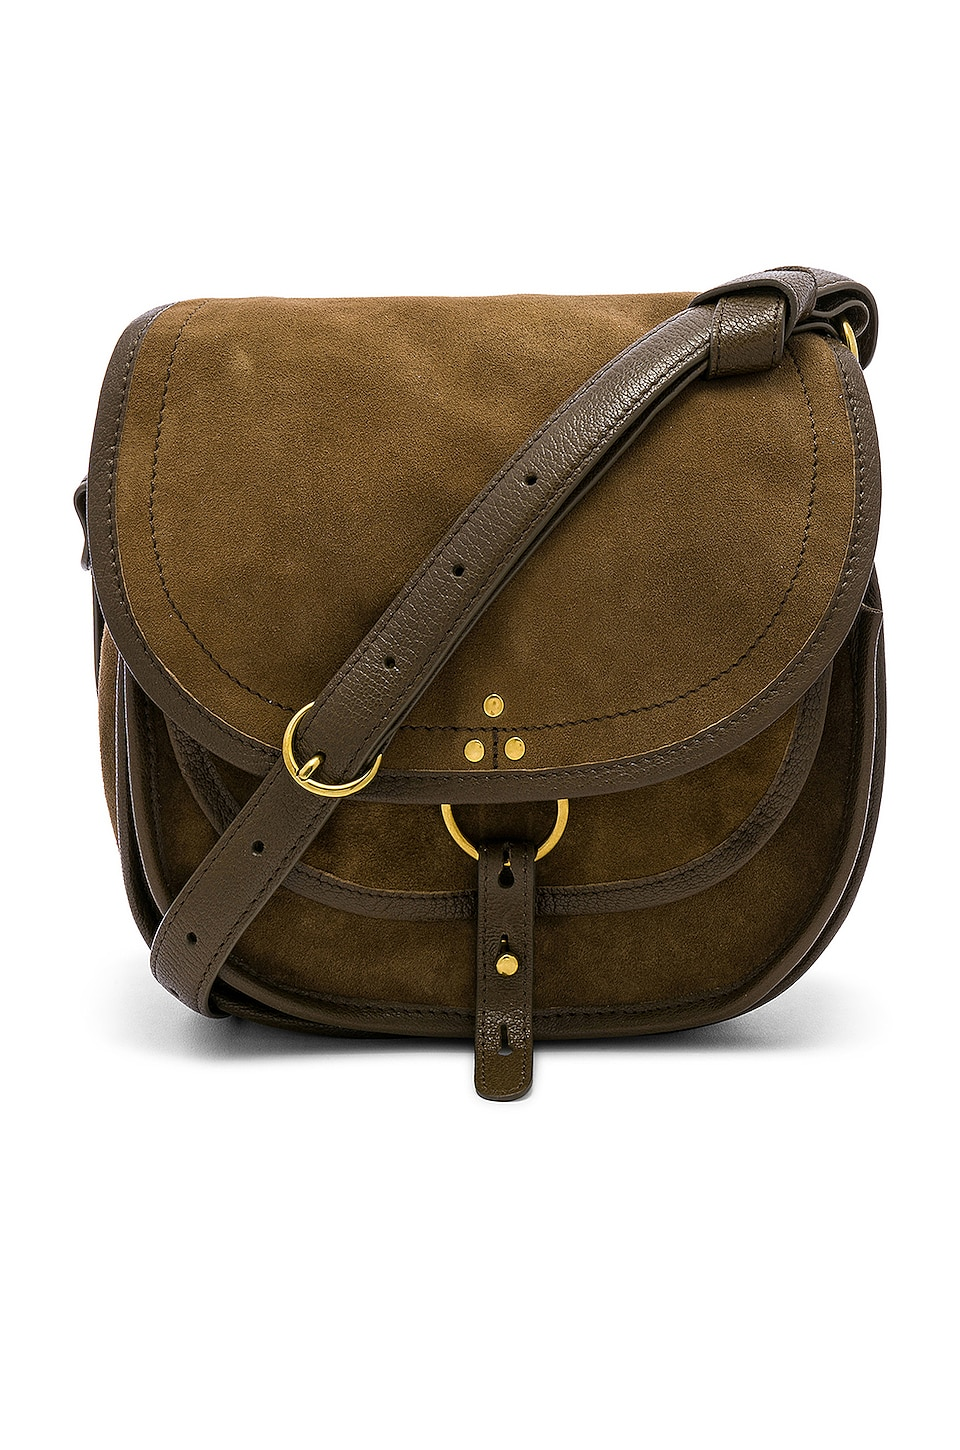 Jerome Dreyfuss SAC FELIX MEDIUM